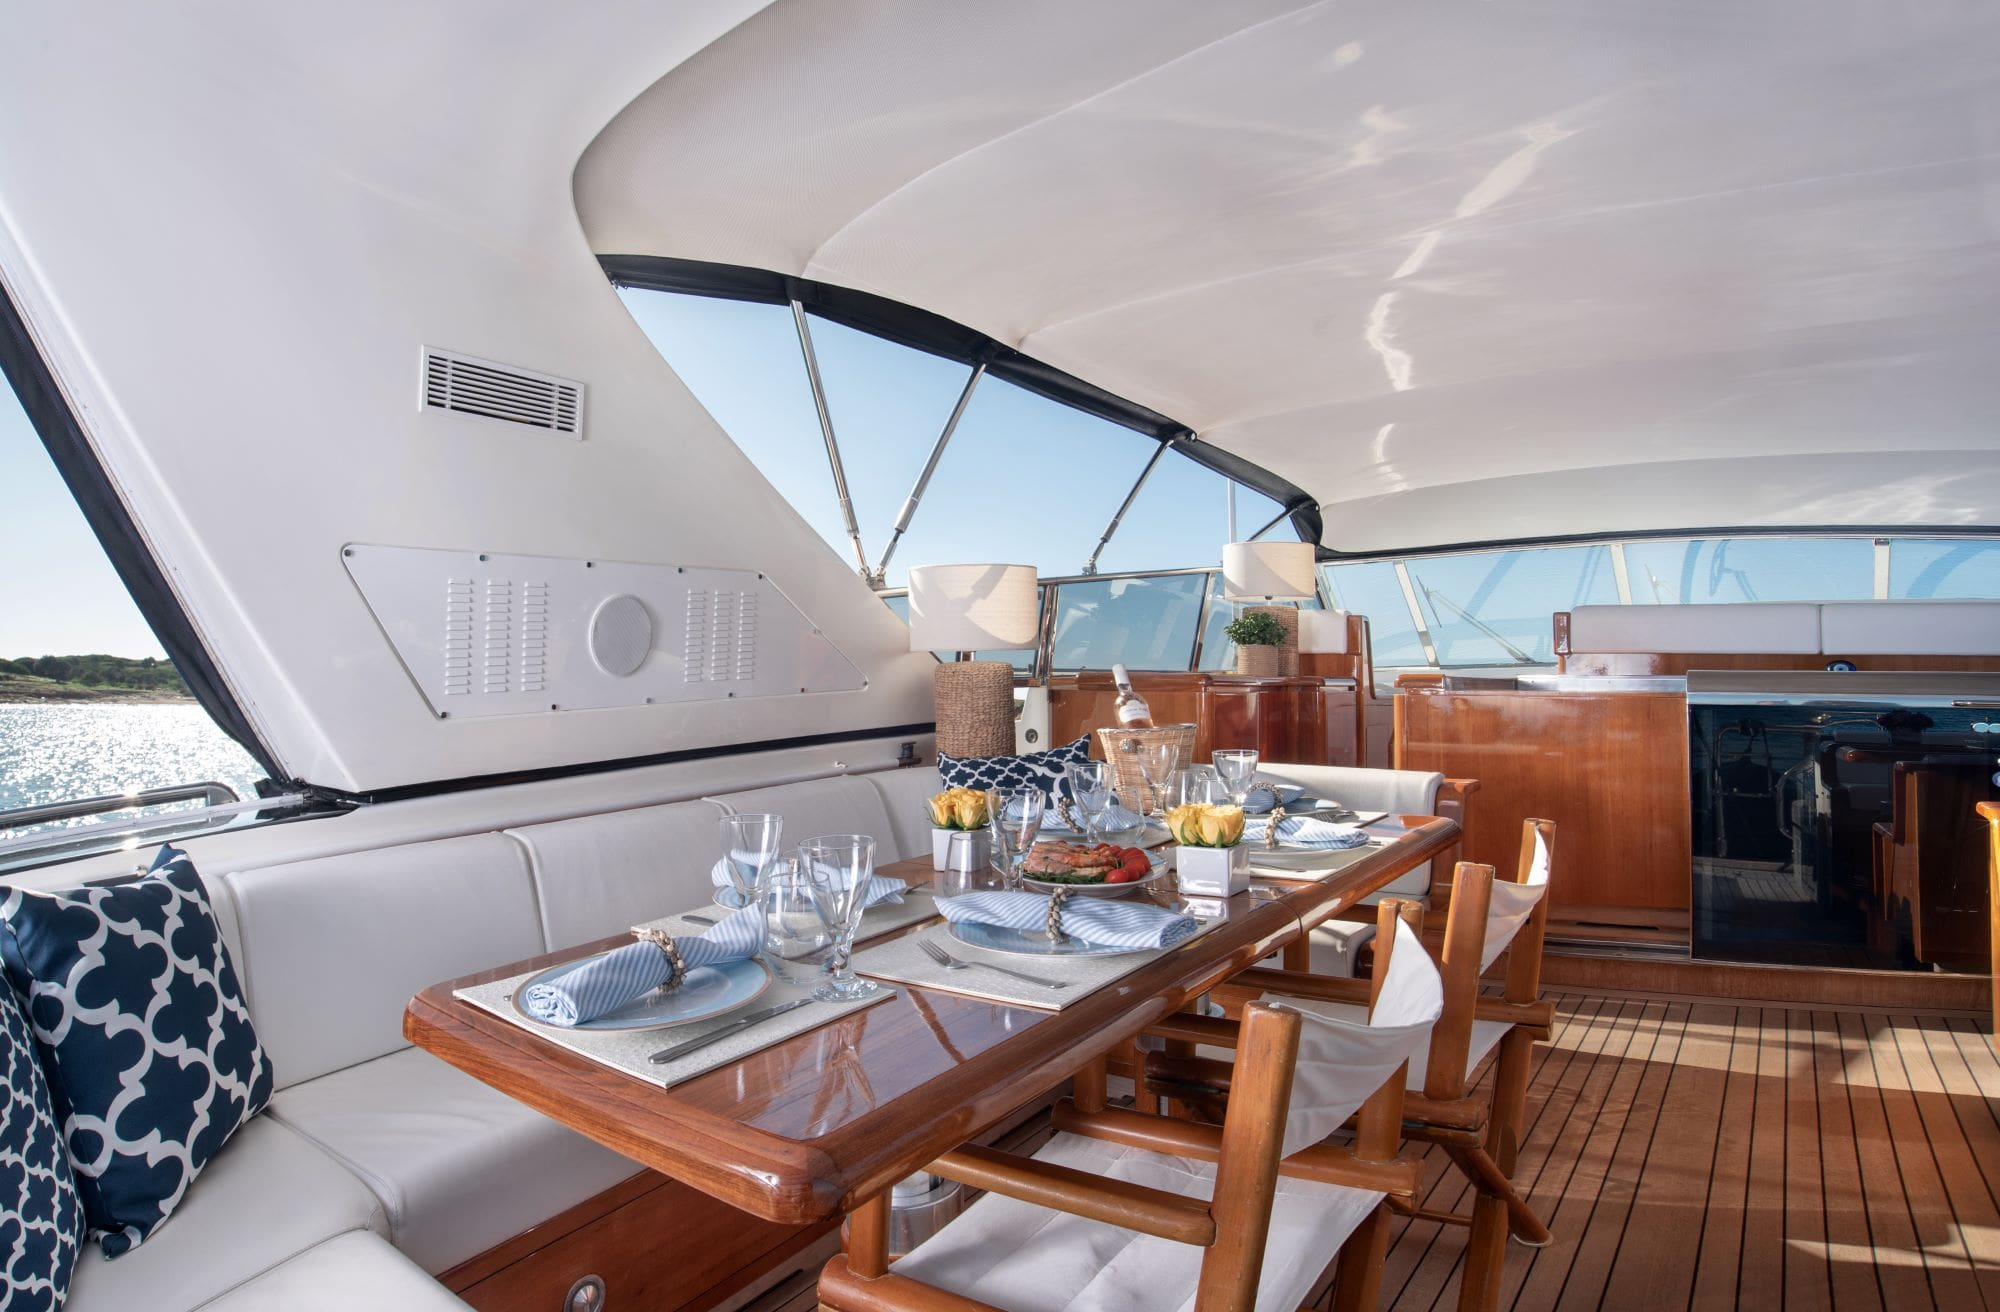 turn on motor yacht aft table (1) -  Valef Yachts Chartering - 0170